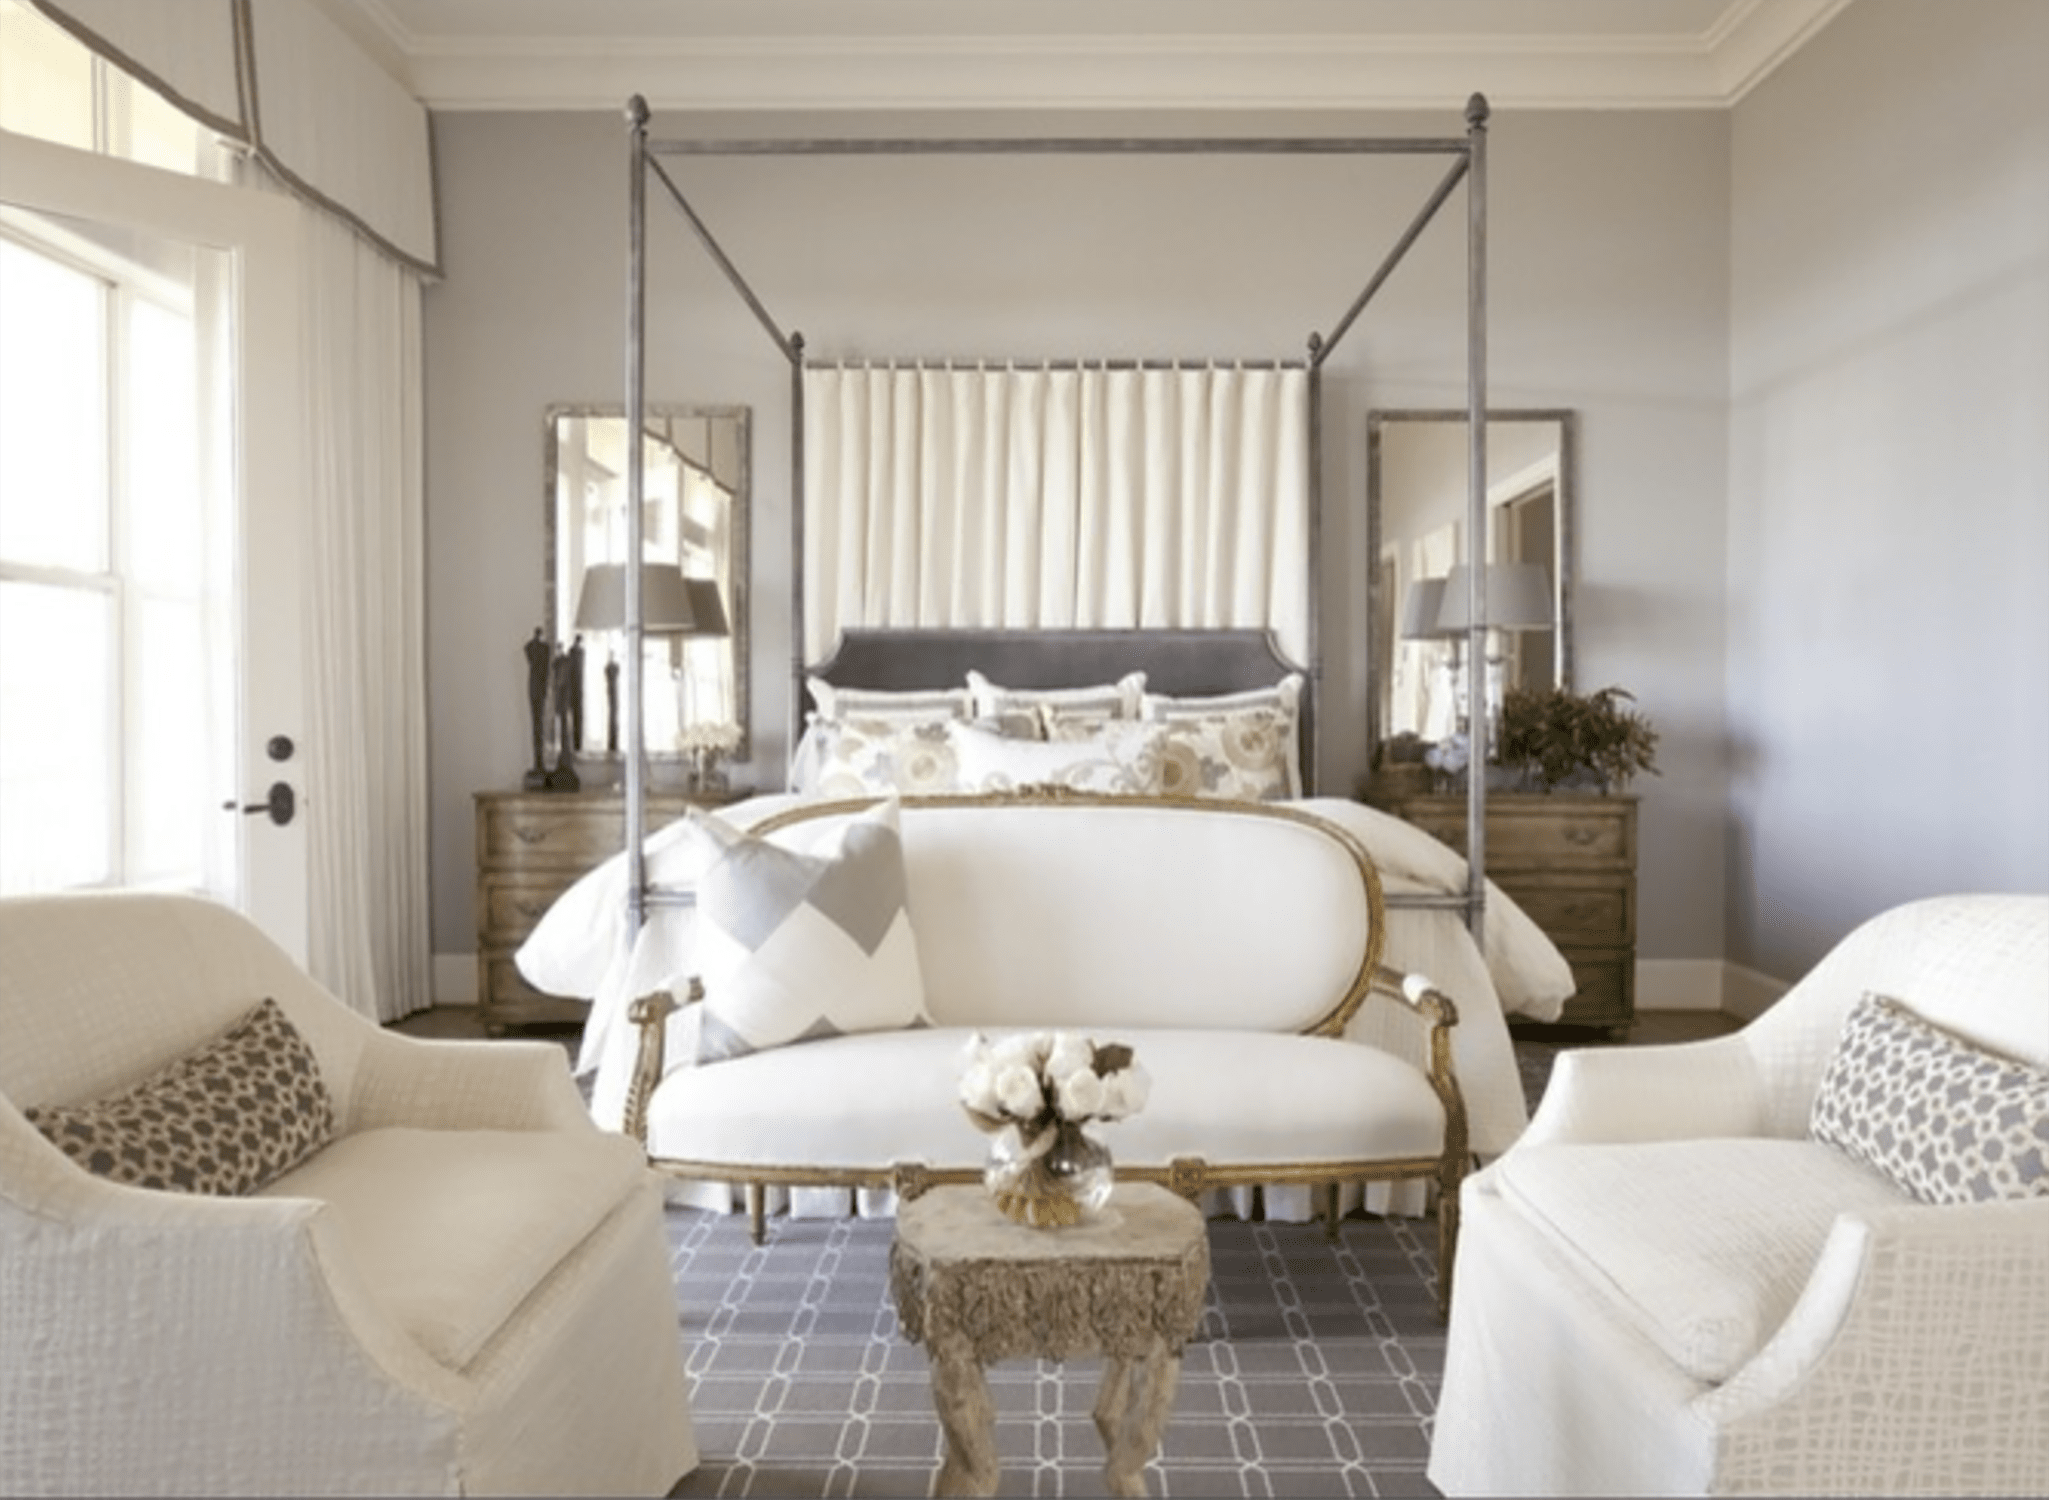 Dodson and Daughter designed bedroom with two mirrors